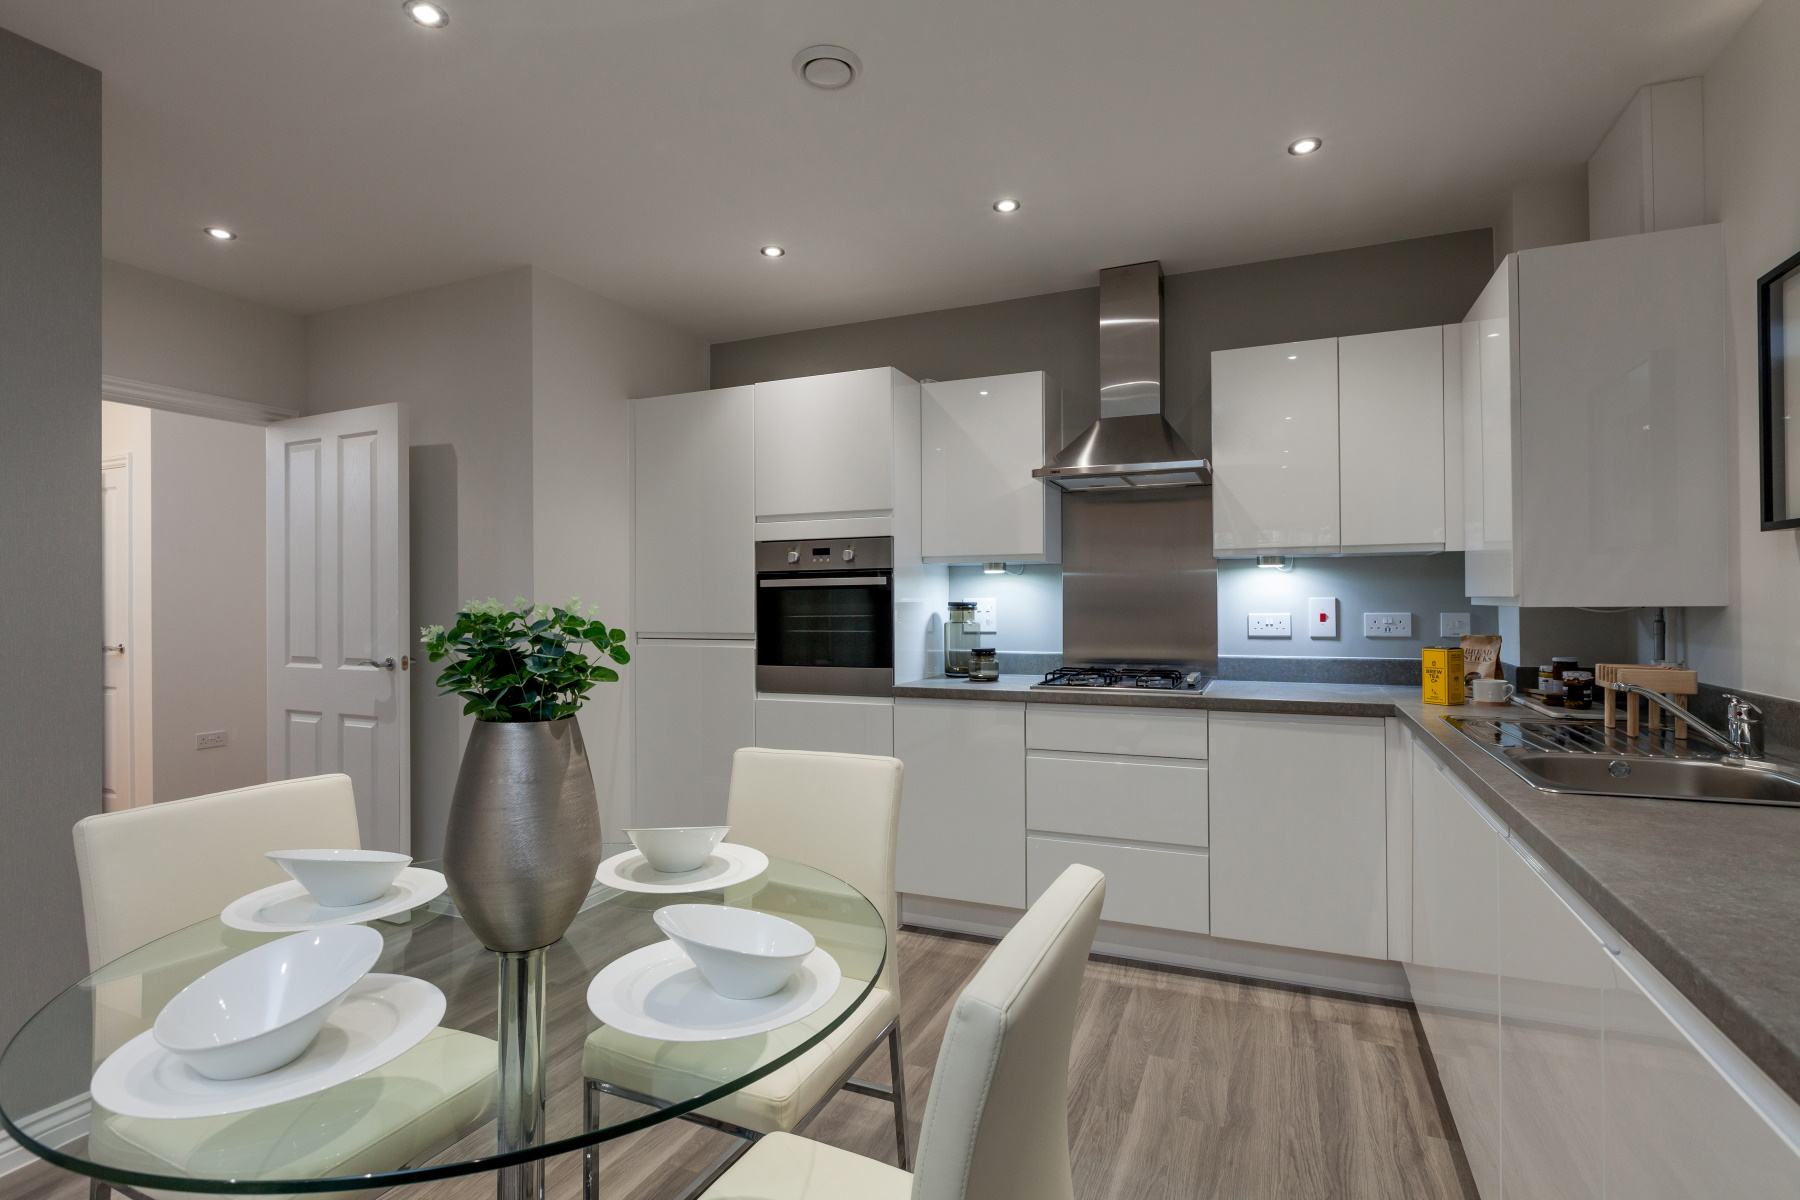 TW Exeter - Sherford - Dovedale example kitchen